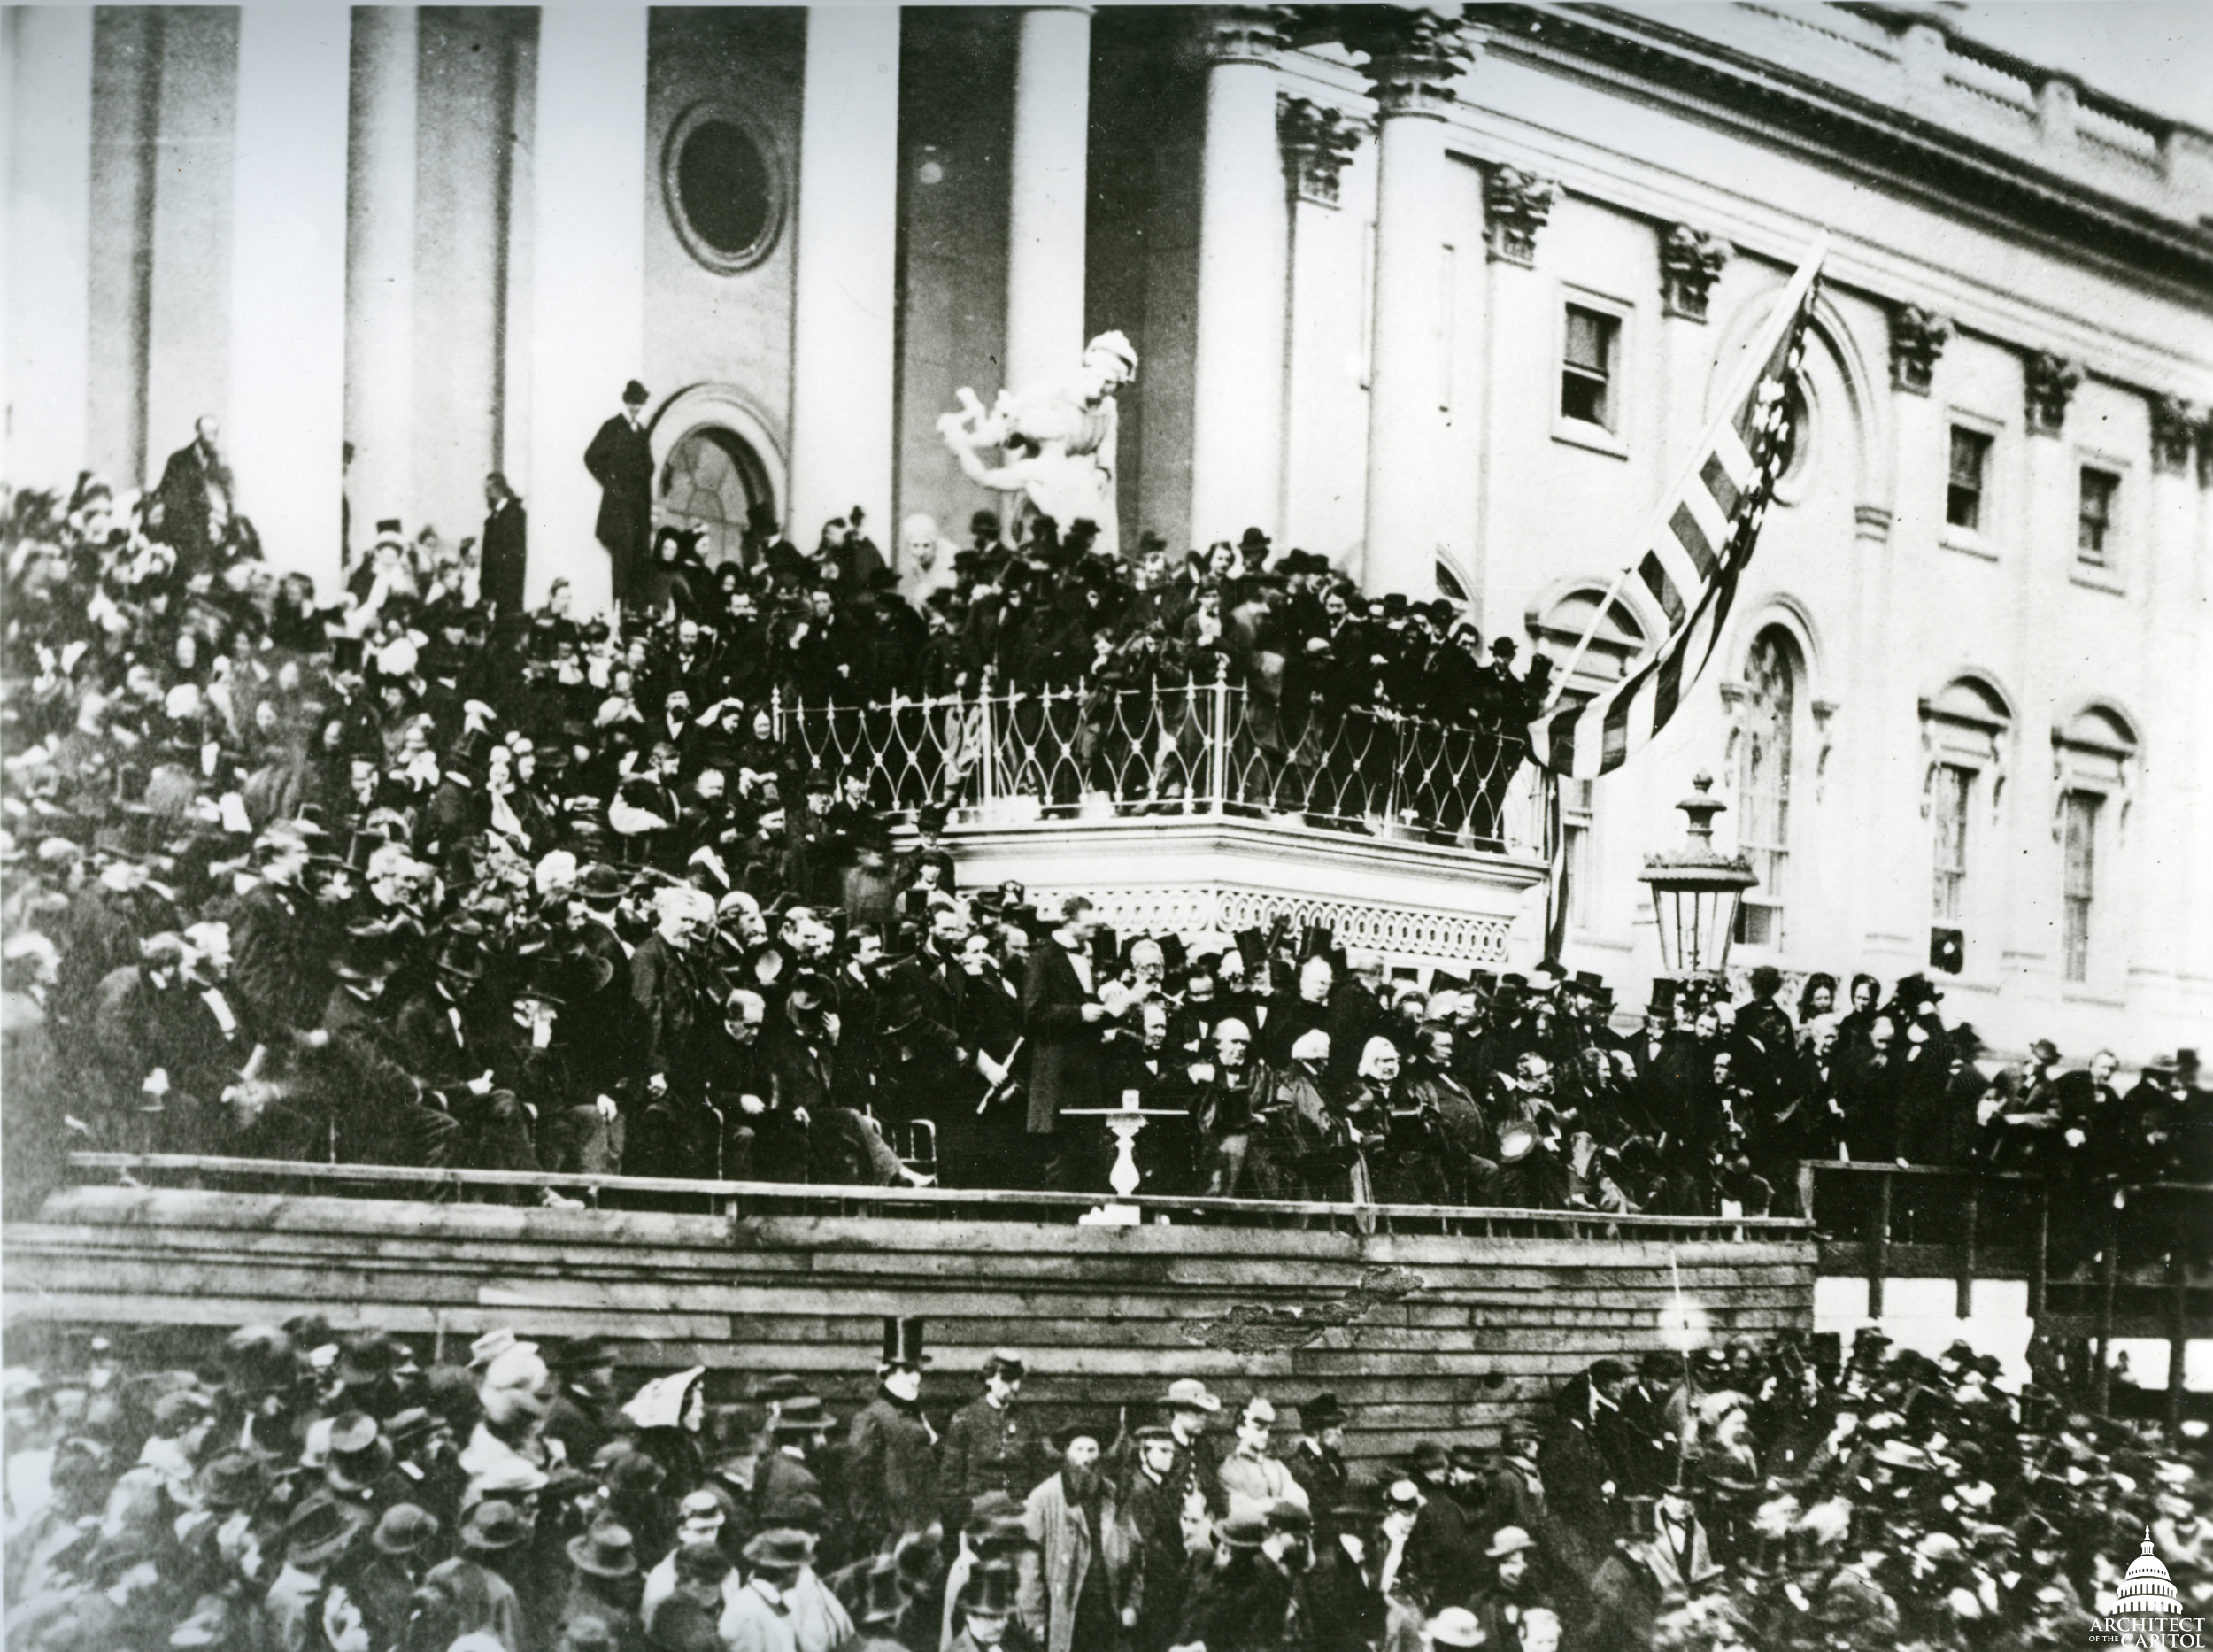 President Abraham Lincoln's inauguration at the U.S. Capitol 1865.